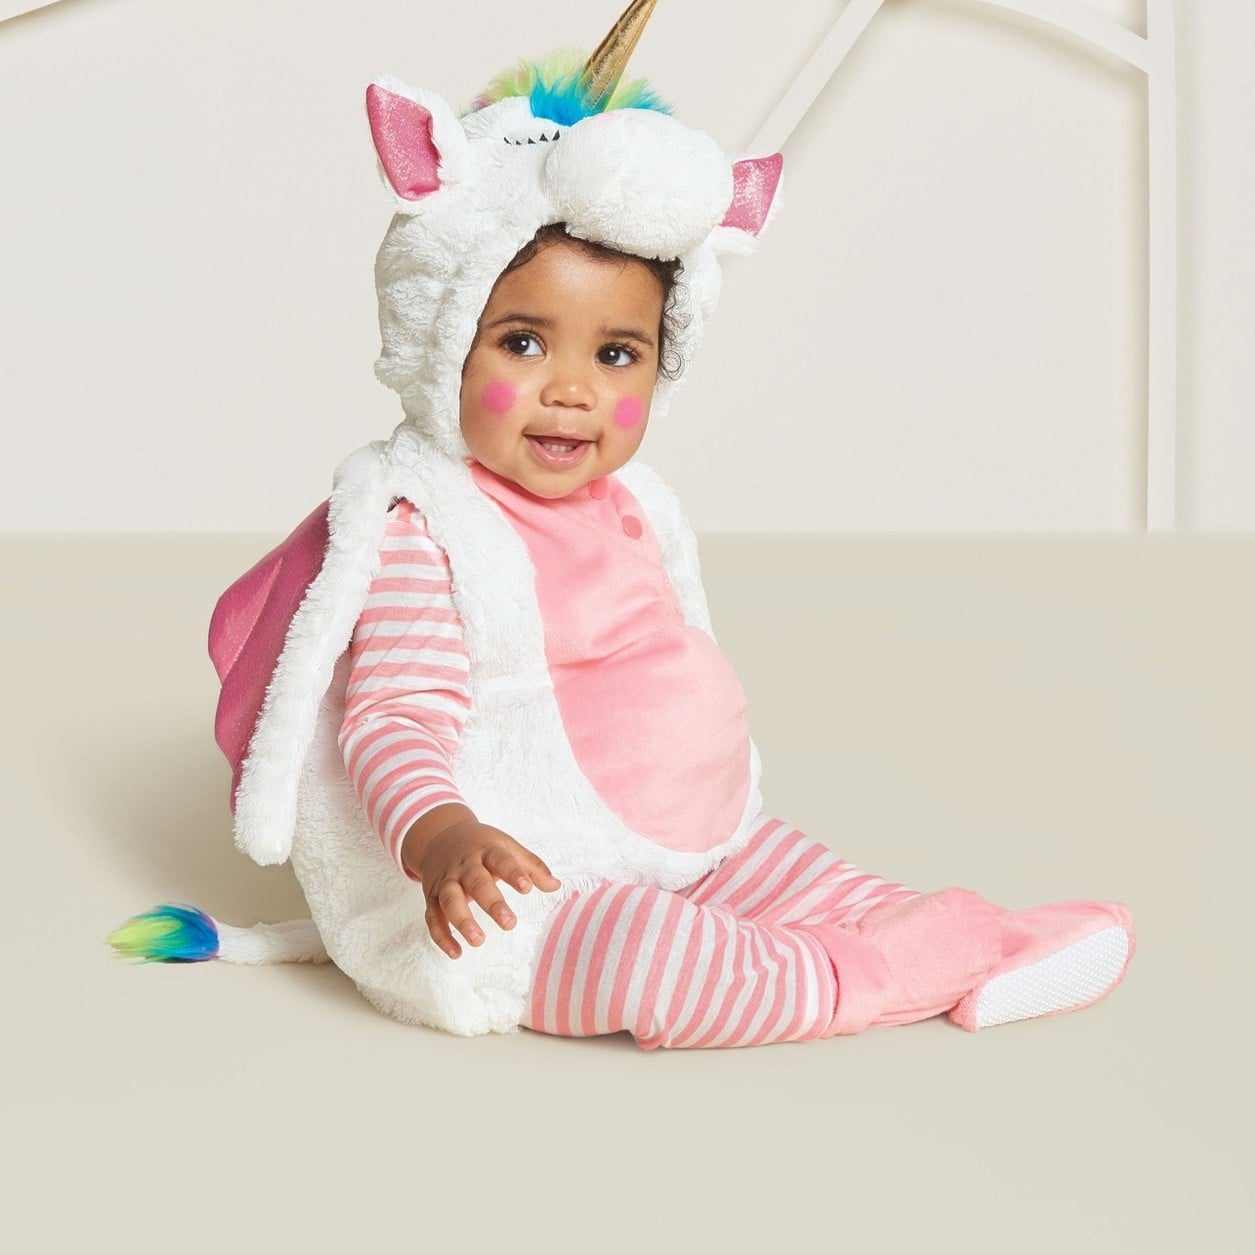 infant strawberry costume | cheap costumes for baby's first